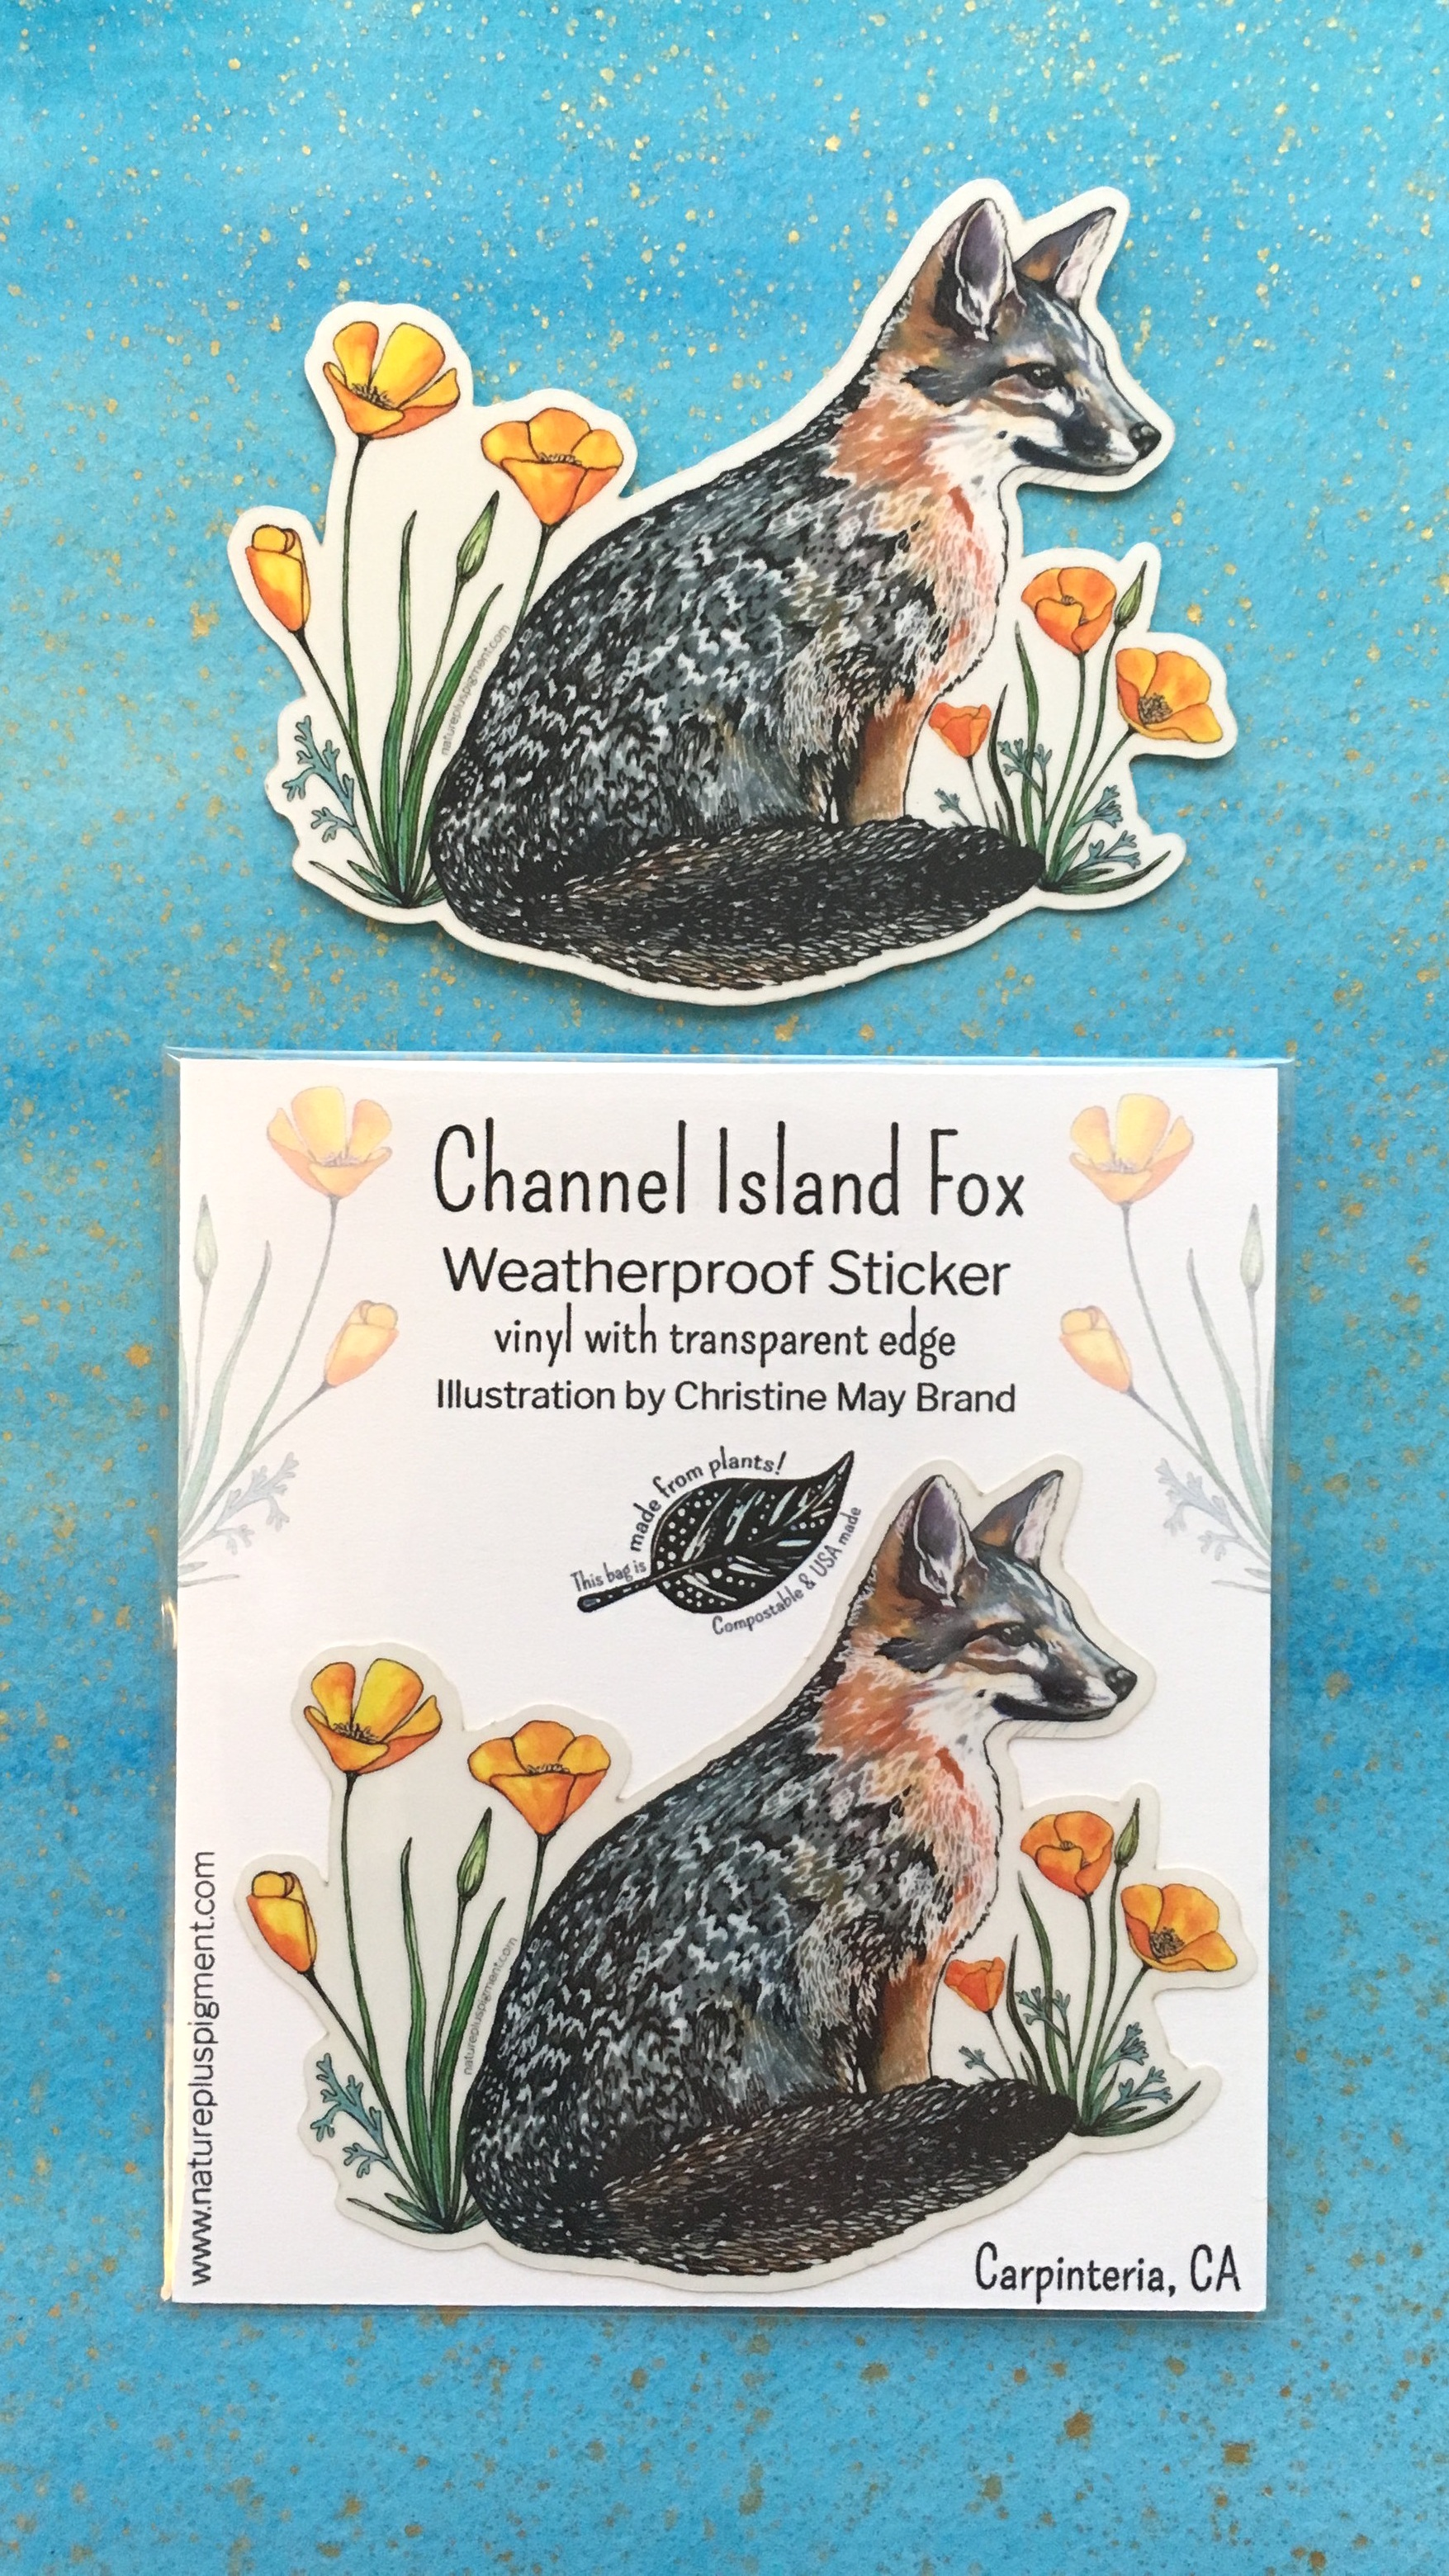 example packaging - Every sticker has its own matching description card & clear eco-friendly sleeve. This protects the sticker for display purposes and allows for easy price placement on the back. Please let me know if you'd like to see more examples or would like a sample!